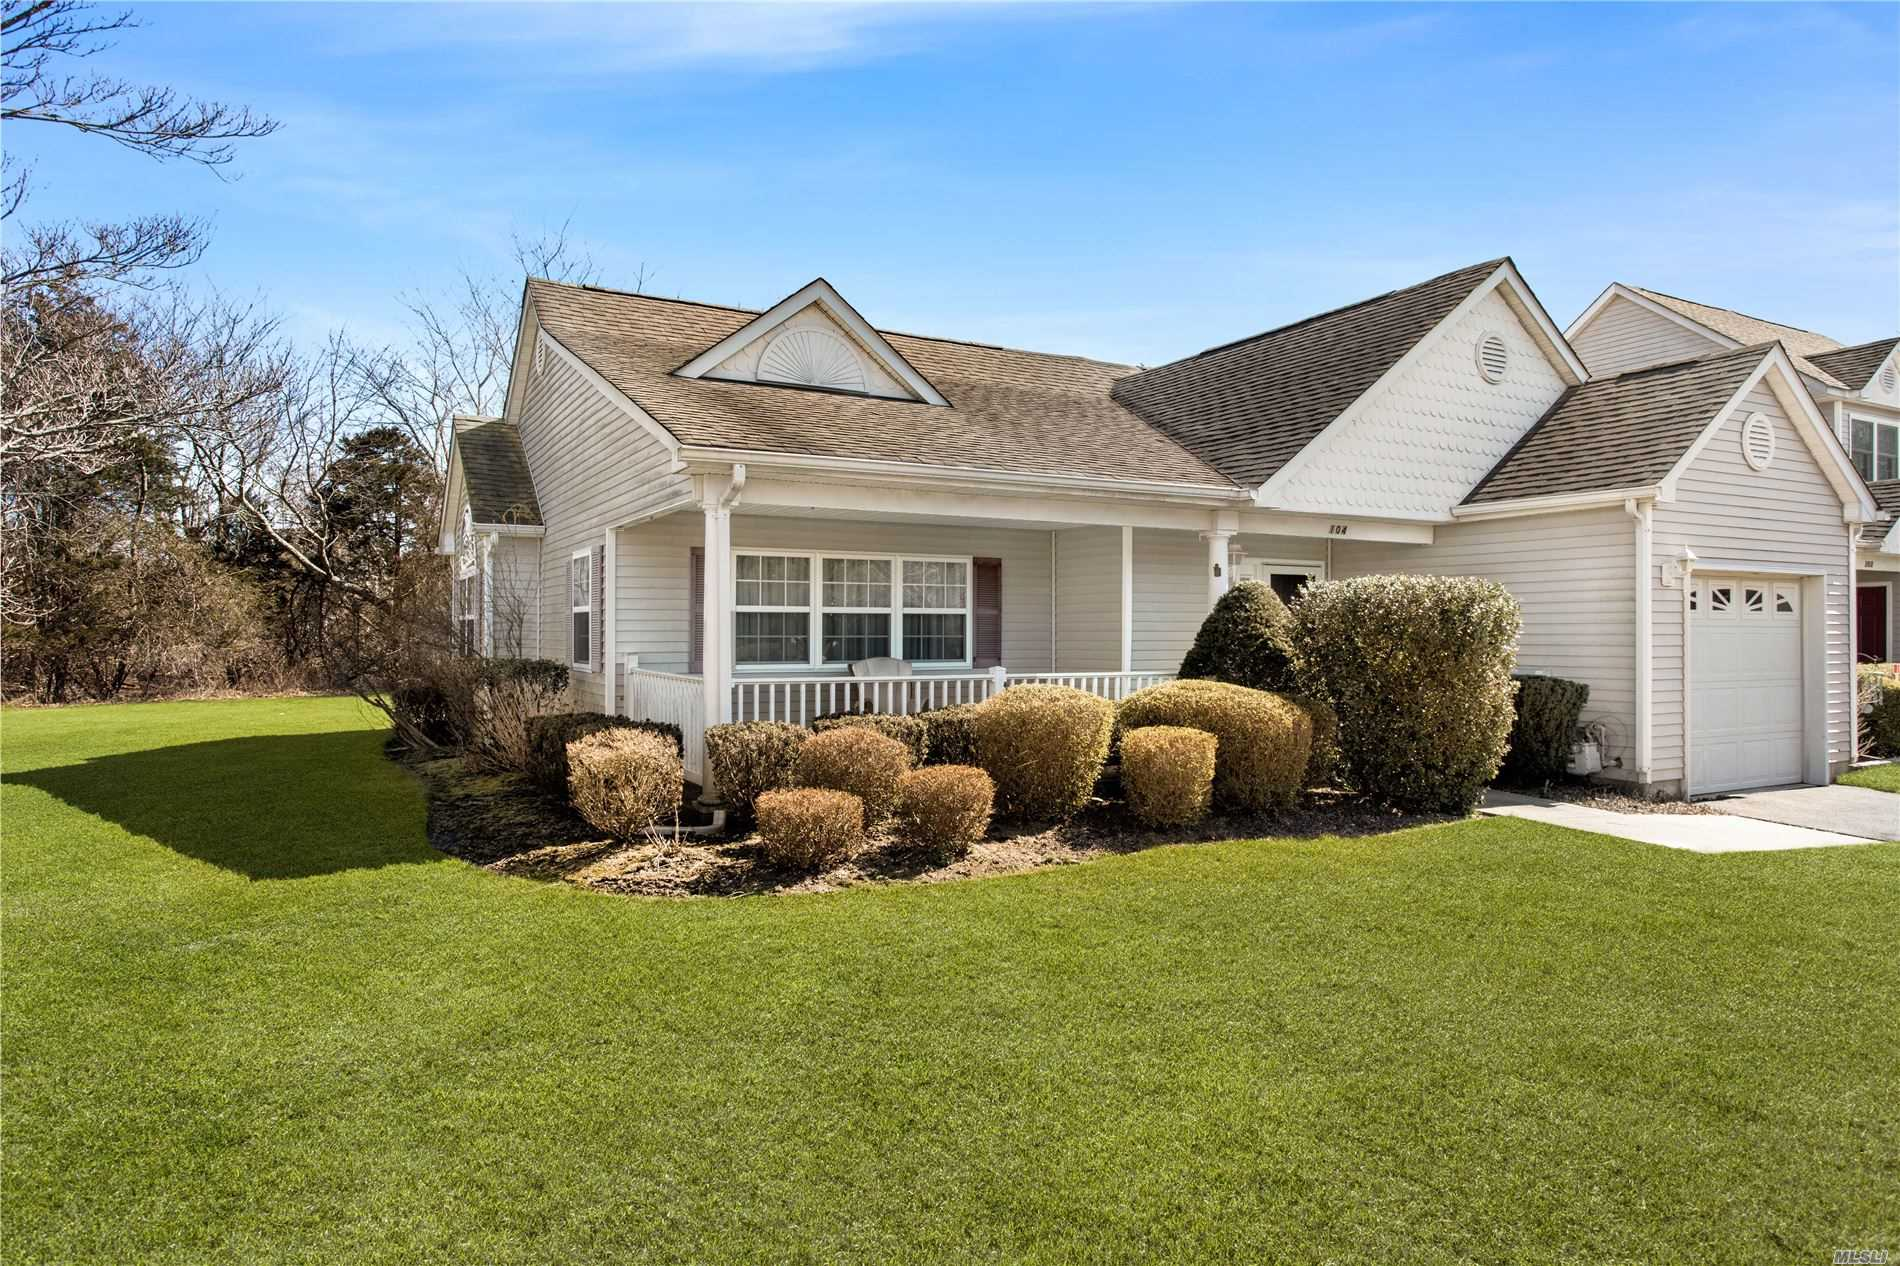 Property for sale at 104 Winged Foot Way, Riverhead NY 11901, Riverhead,  New York 11901